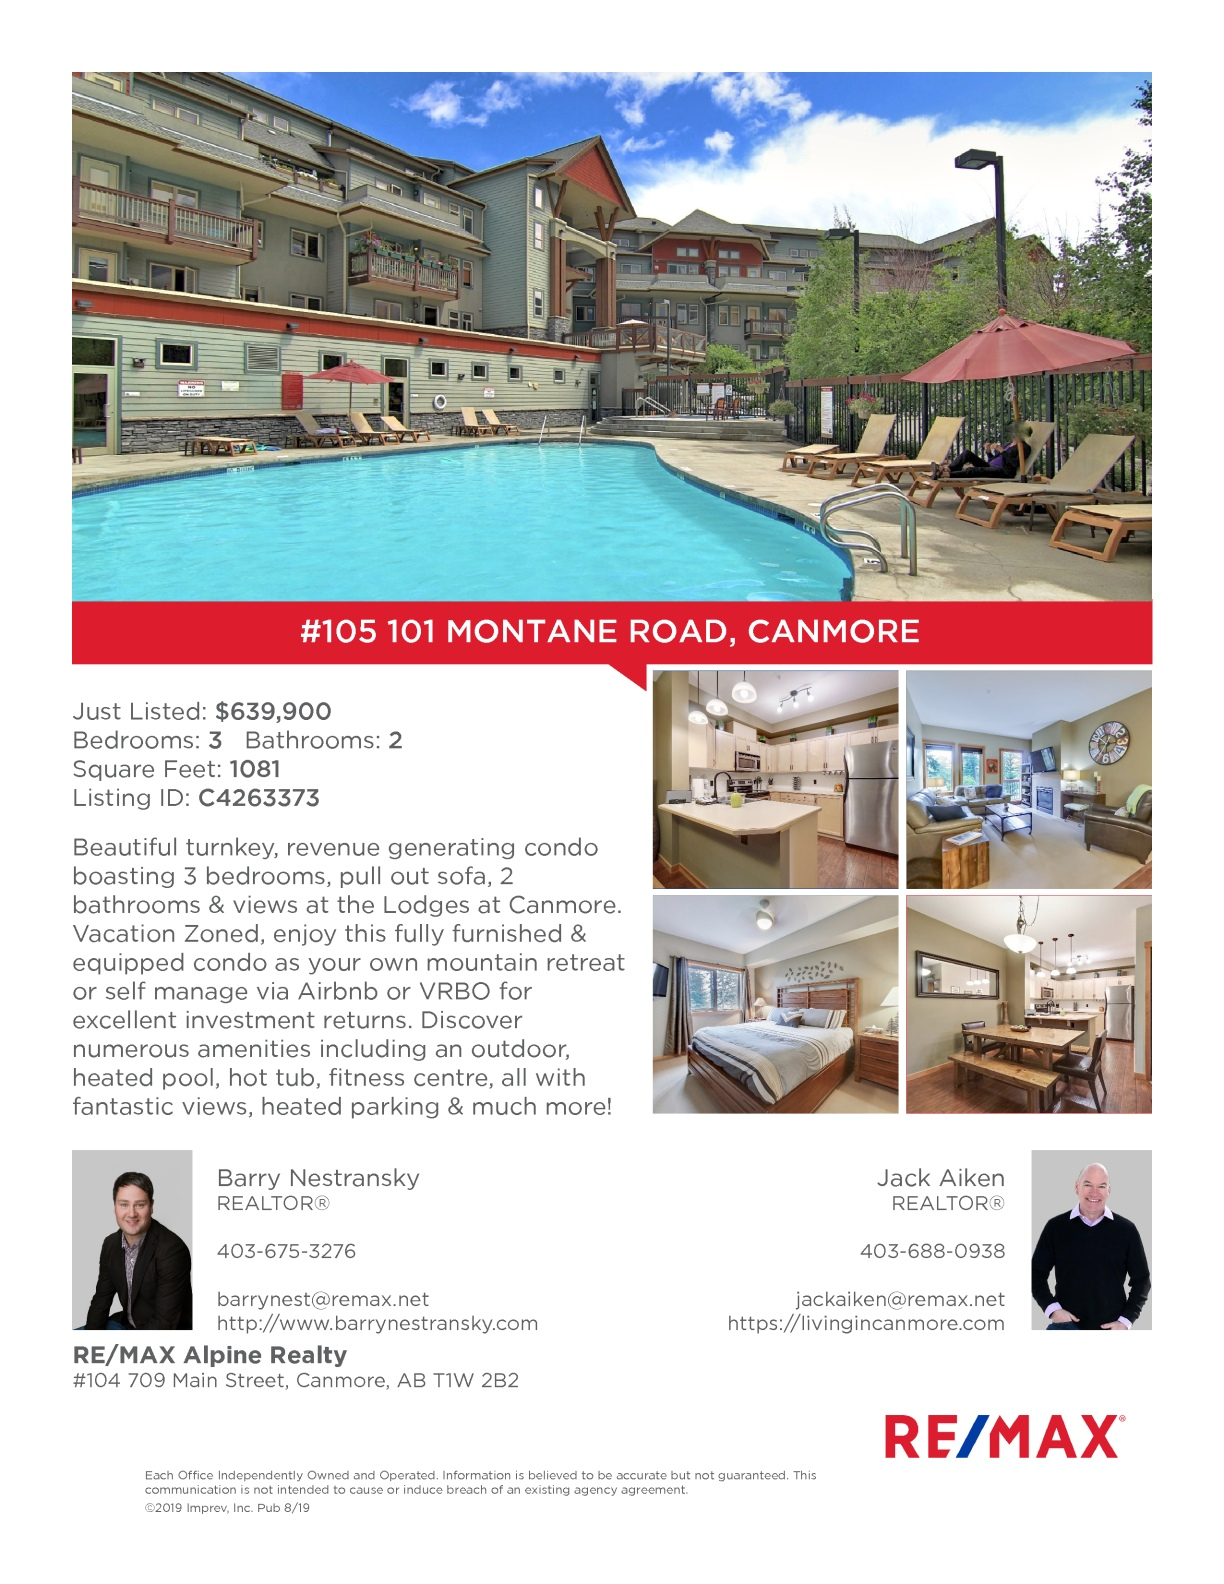 #105 101 Montane Road, Canmore